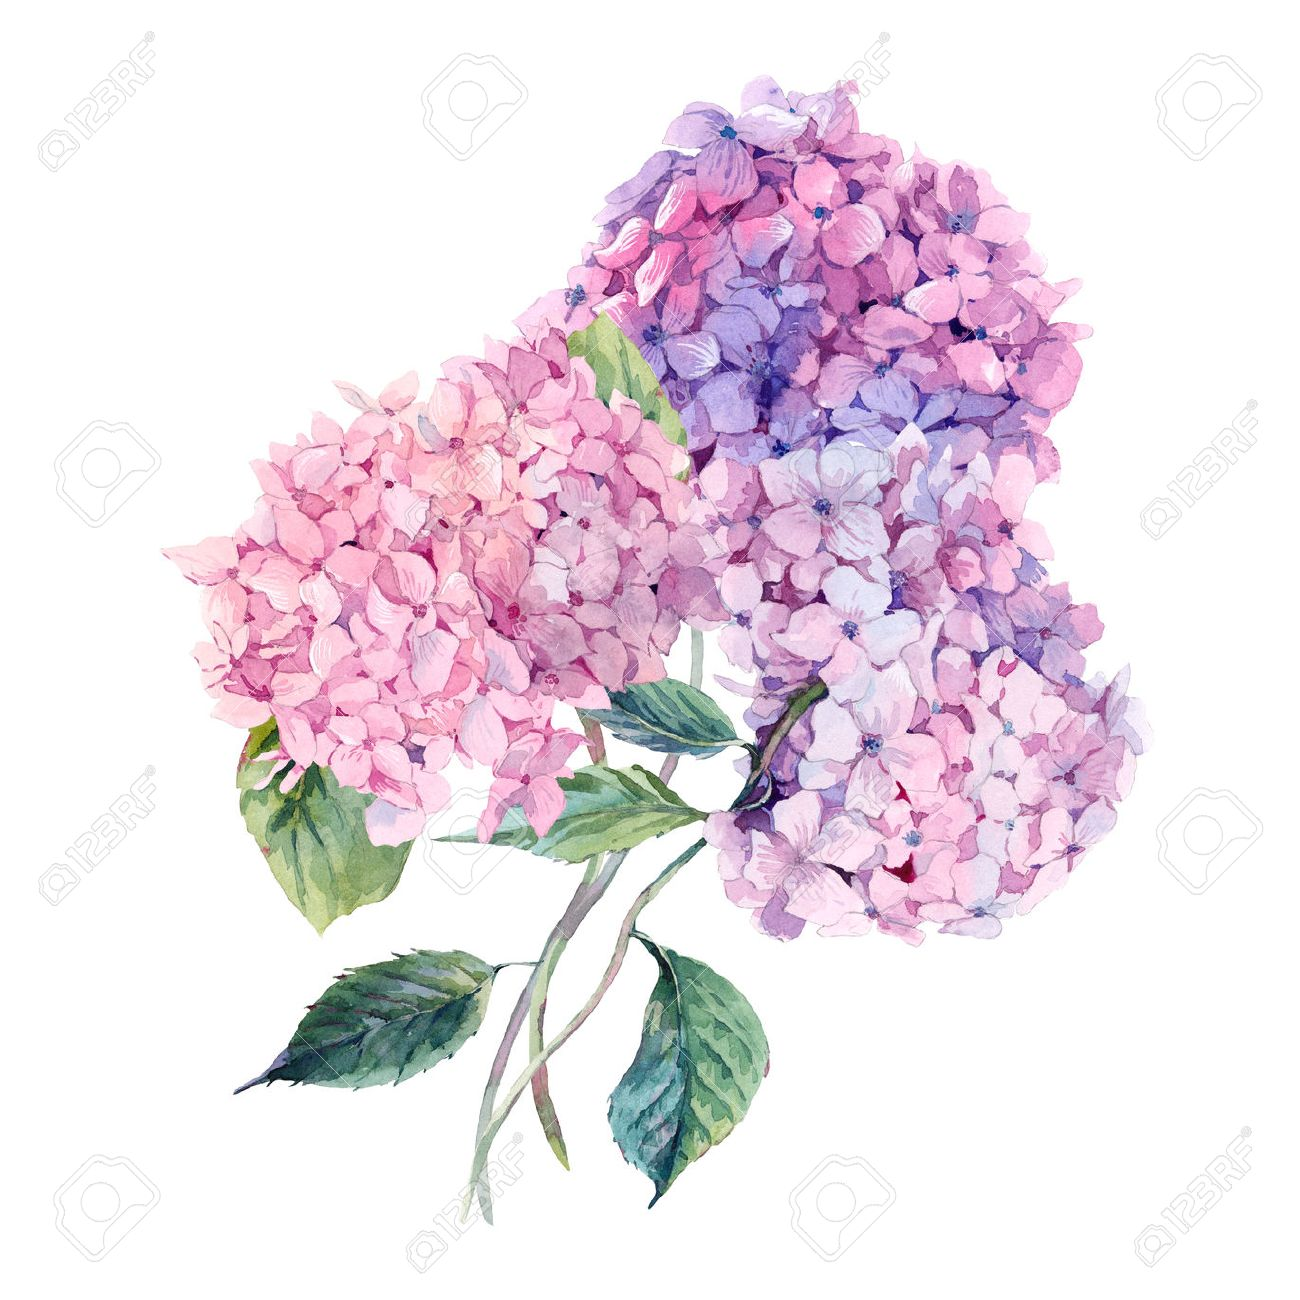 6 495 hydrangea cliparts stock vector and royalty free hydrangea rh 123rf com hydrangea clip art free images hydrangea clip art free images